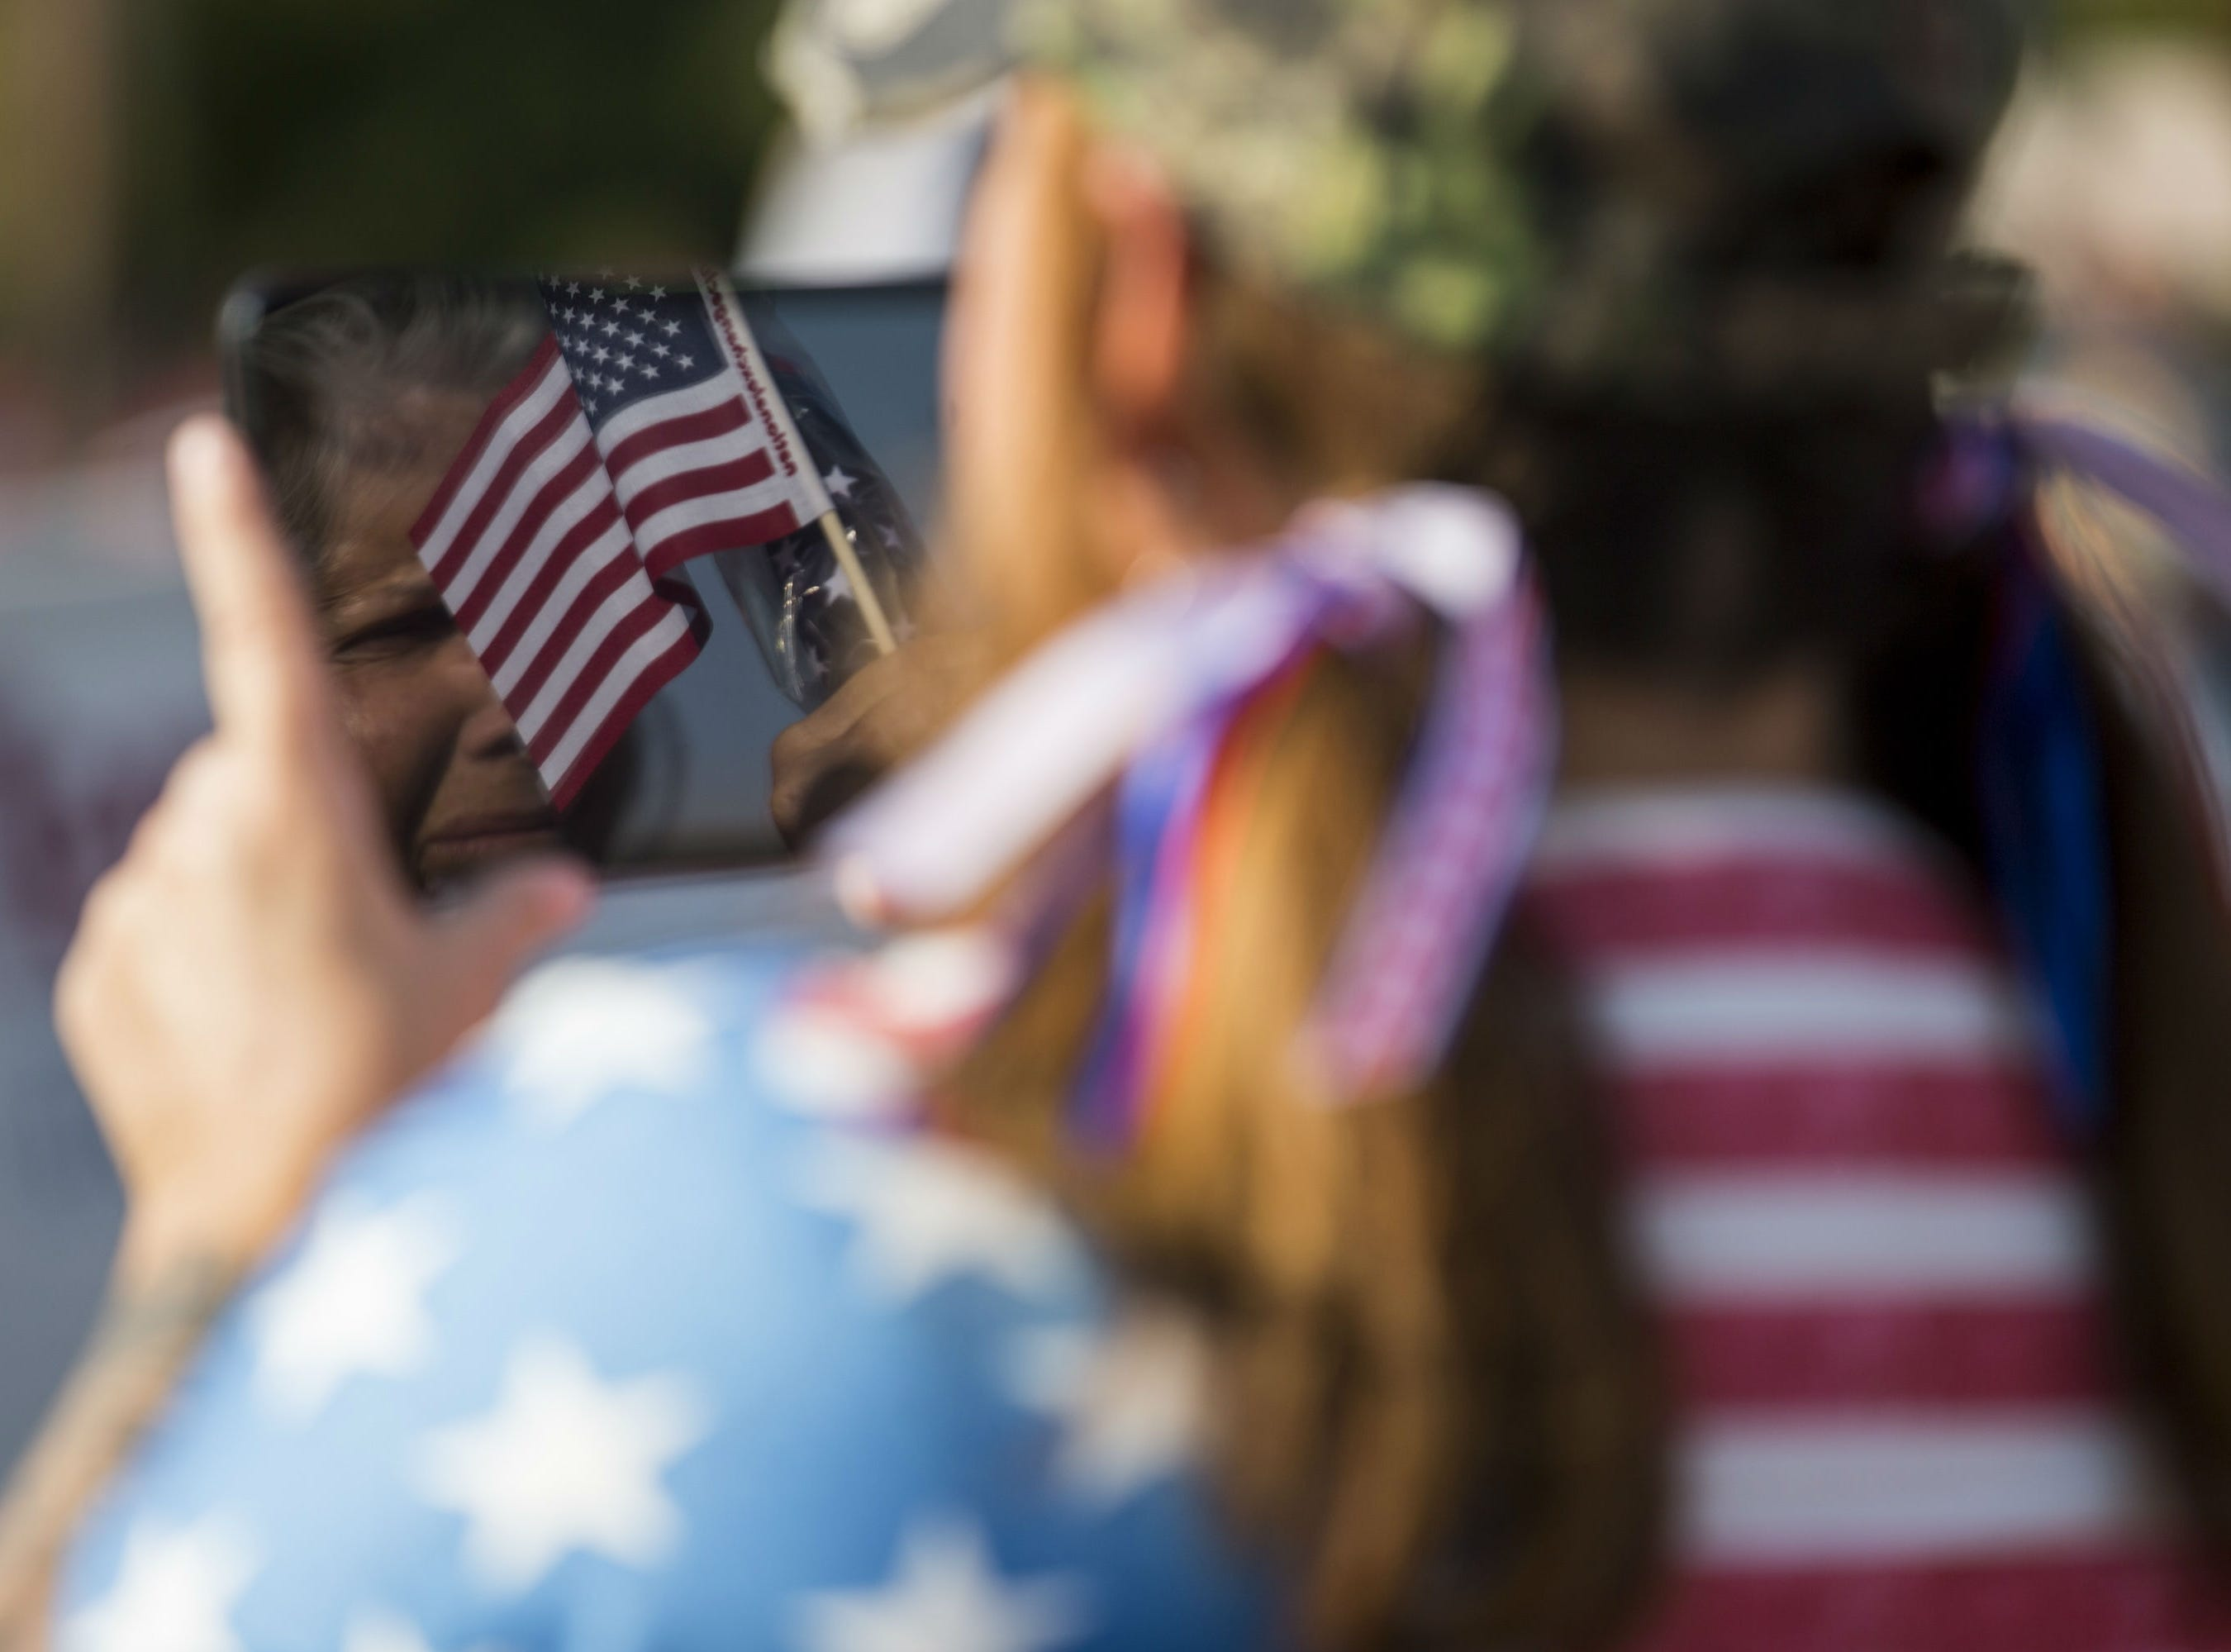 Linda Guariglio is seen in the reflection of Stephanie Guariglio's screen during the Veterans Day Parade on Nov. 11, 2018, in Tempe, Ariz.